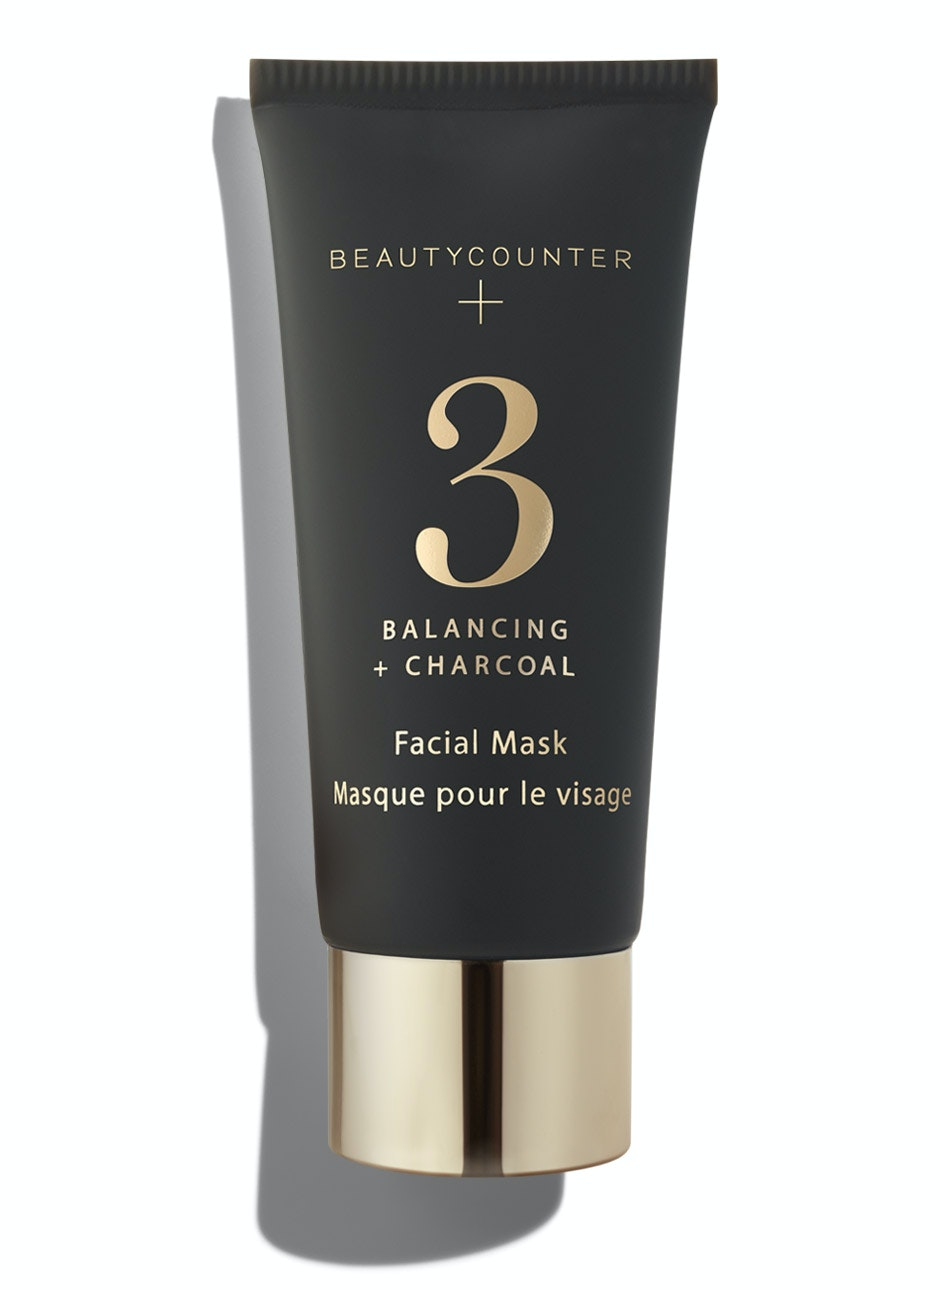 No. 3 Balancing Facial Mask - Charcoal Mask